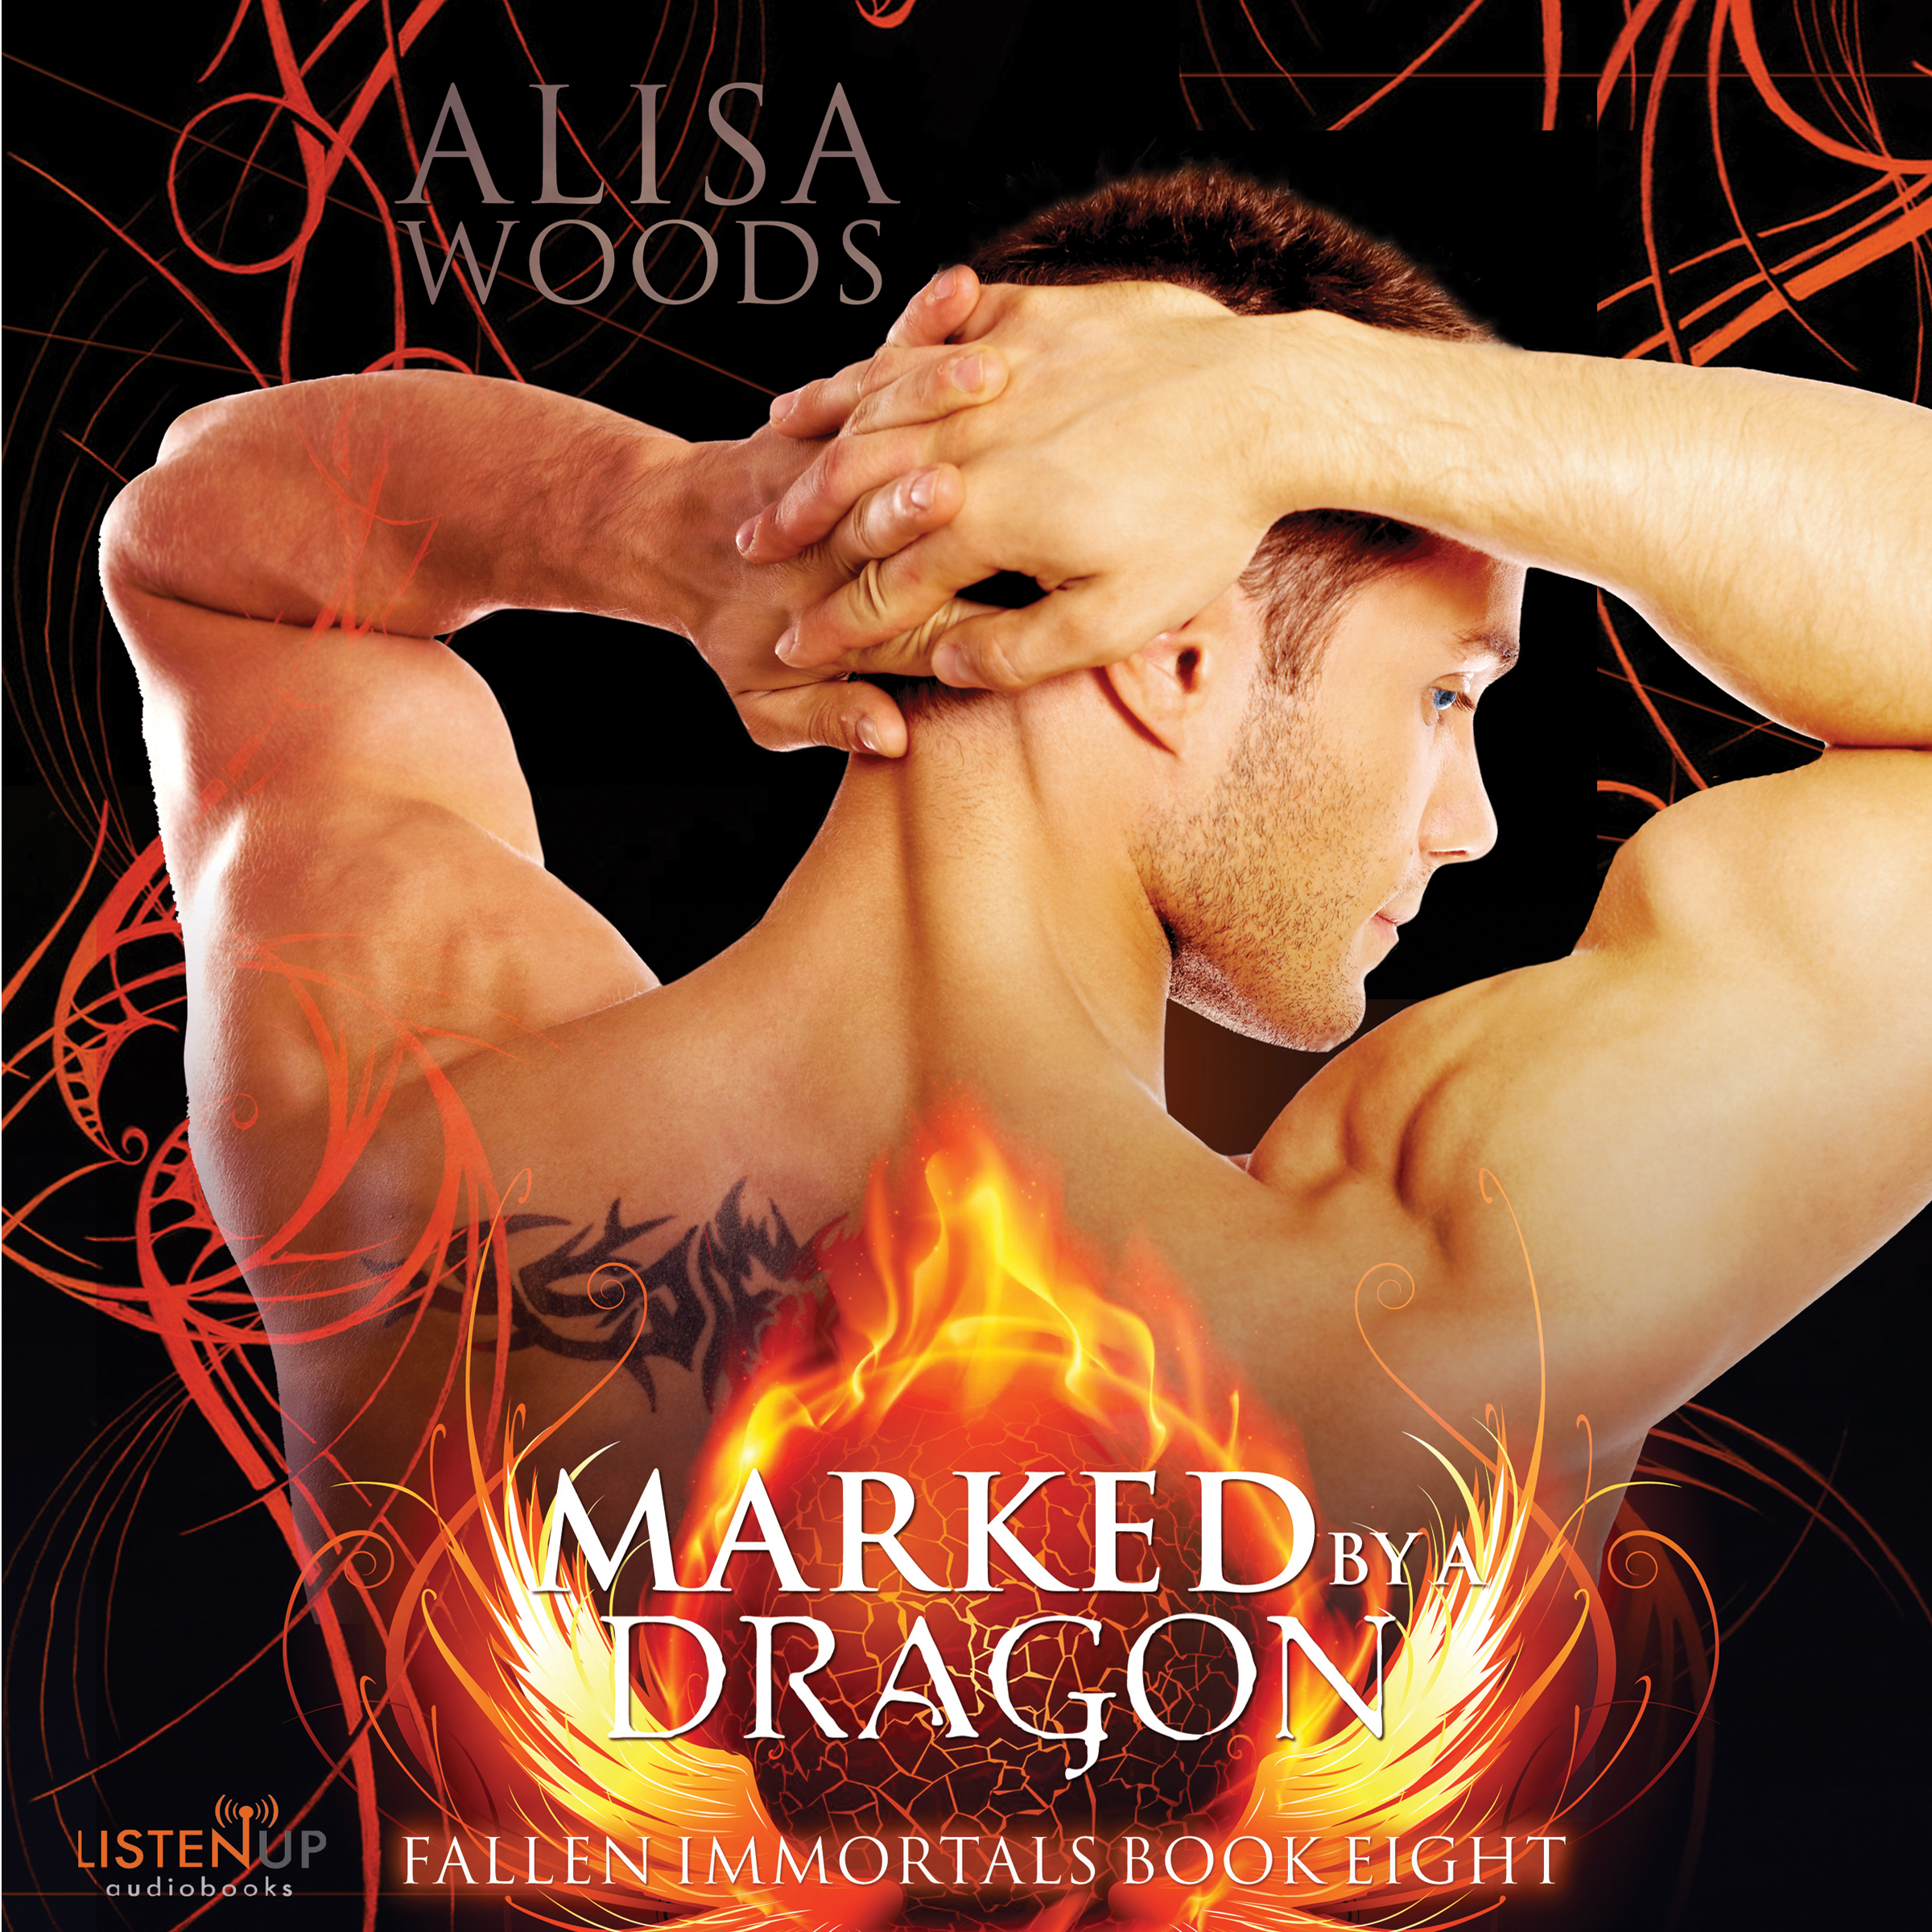 Marked by a Dragon cover image